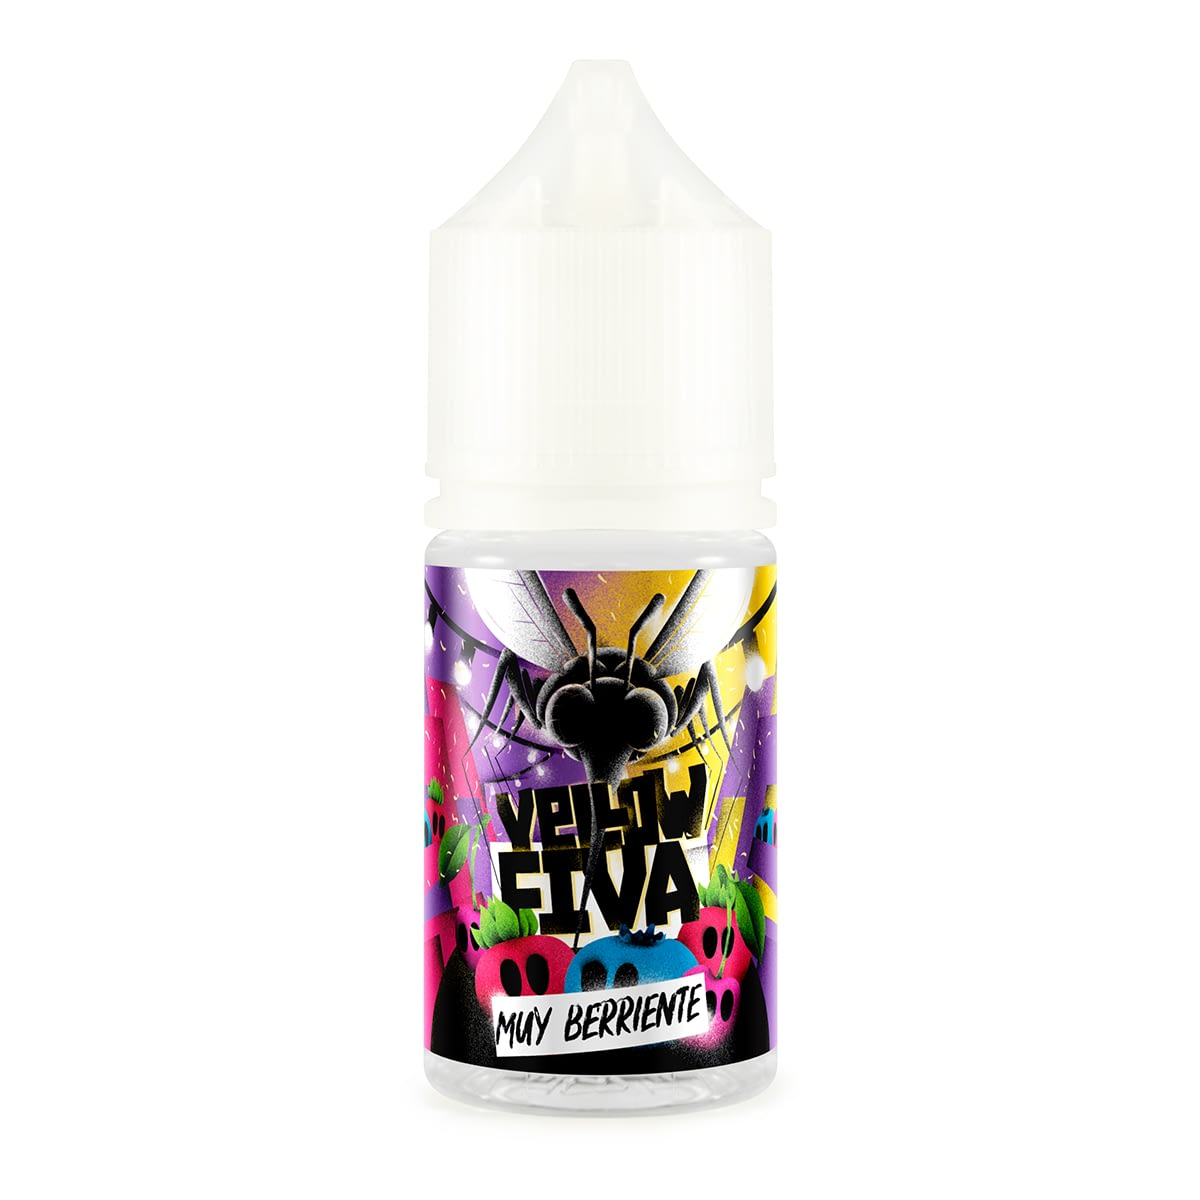 Muy Berriente Flavour Concentrate by Yellow Fiva